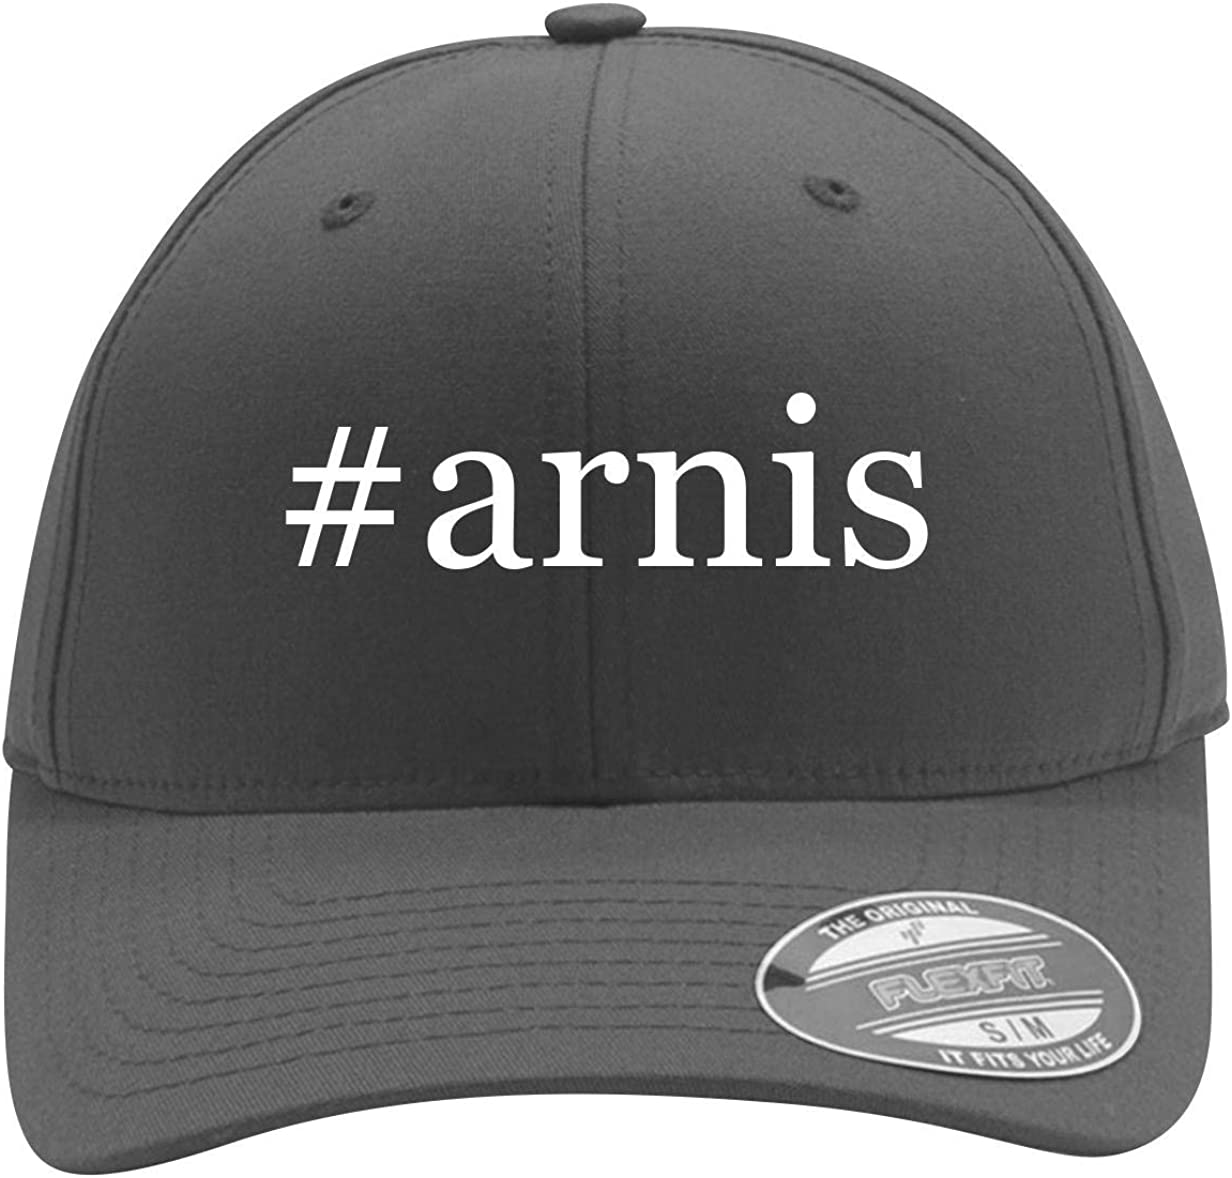 #Arnis - Men's Hashtag Flexfit Baseball Cap Hat